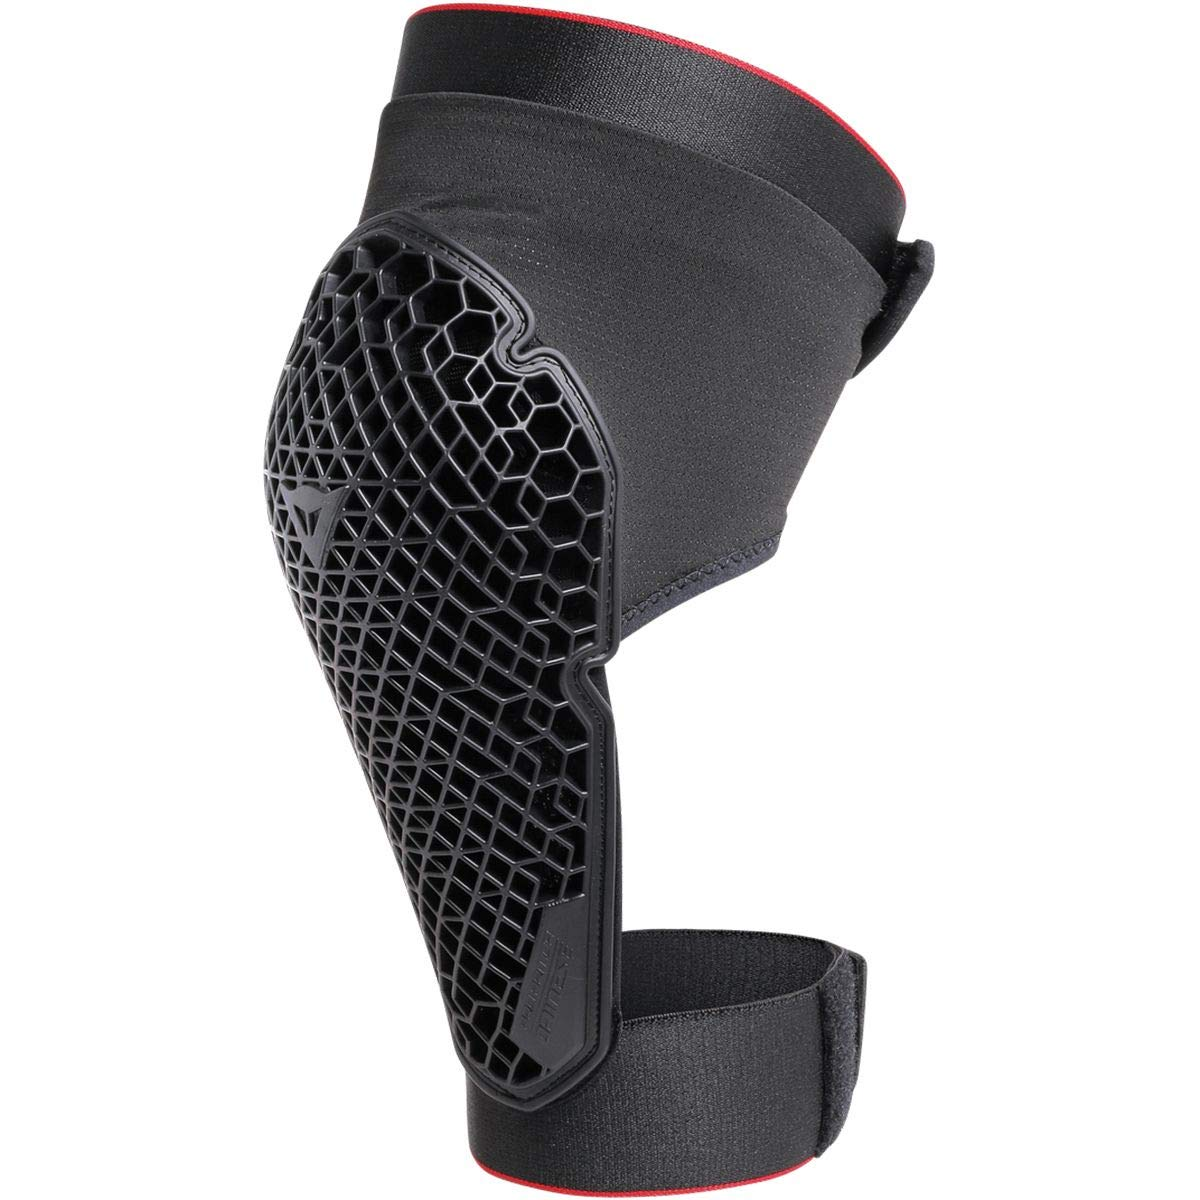 Dainese Men's Trail Skins 2 Knee Guard Lite, Black, X-Large by Dainese